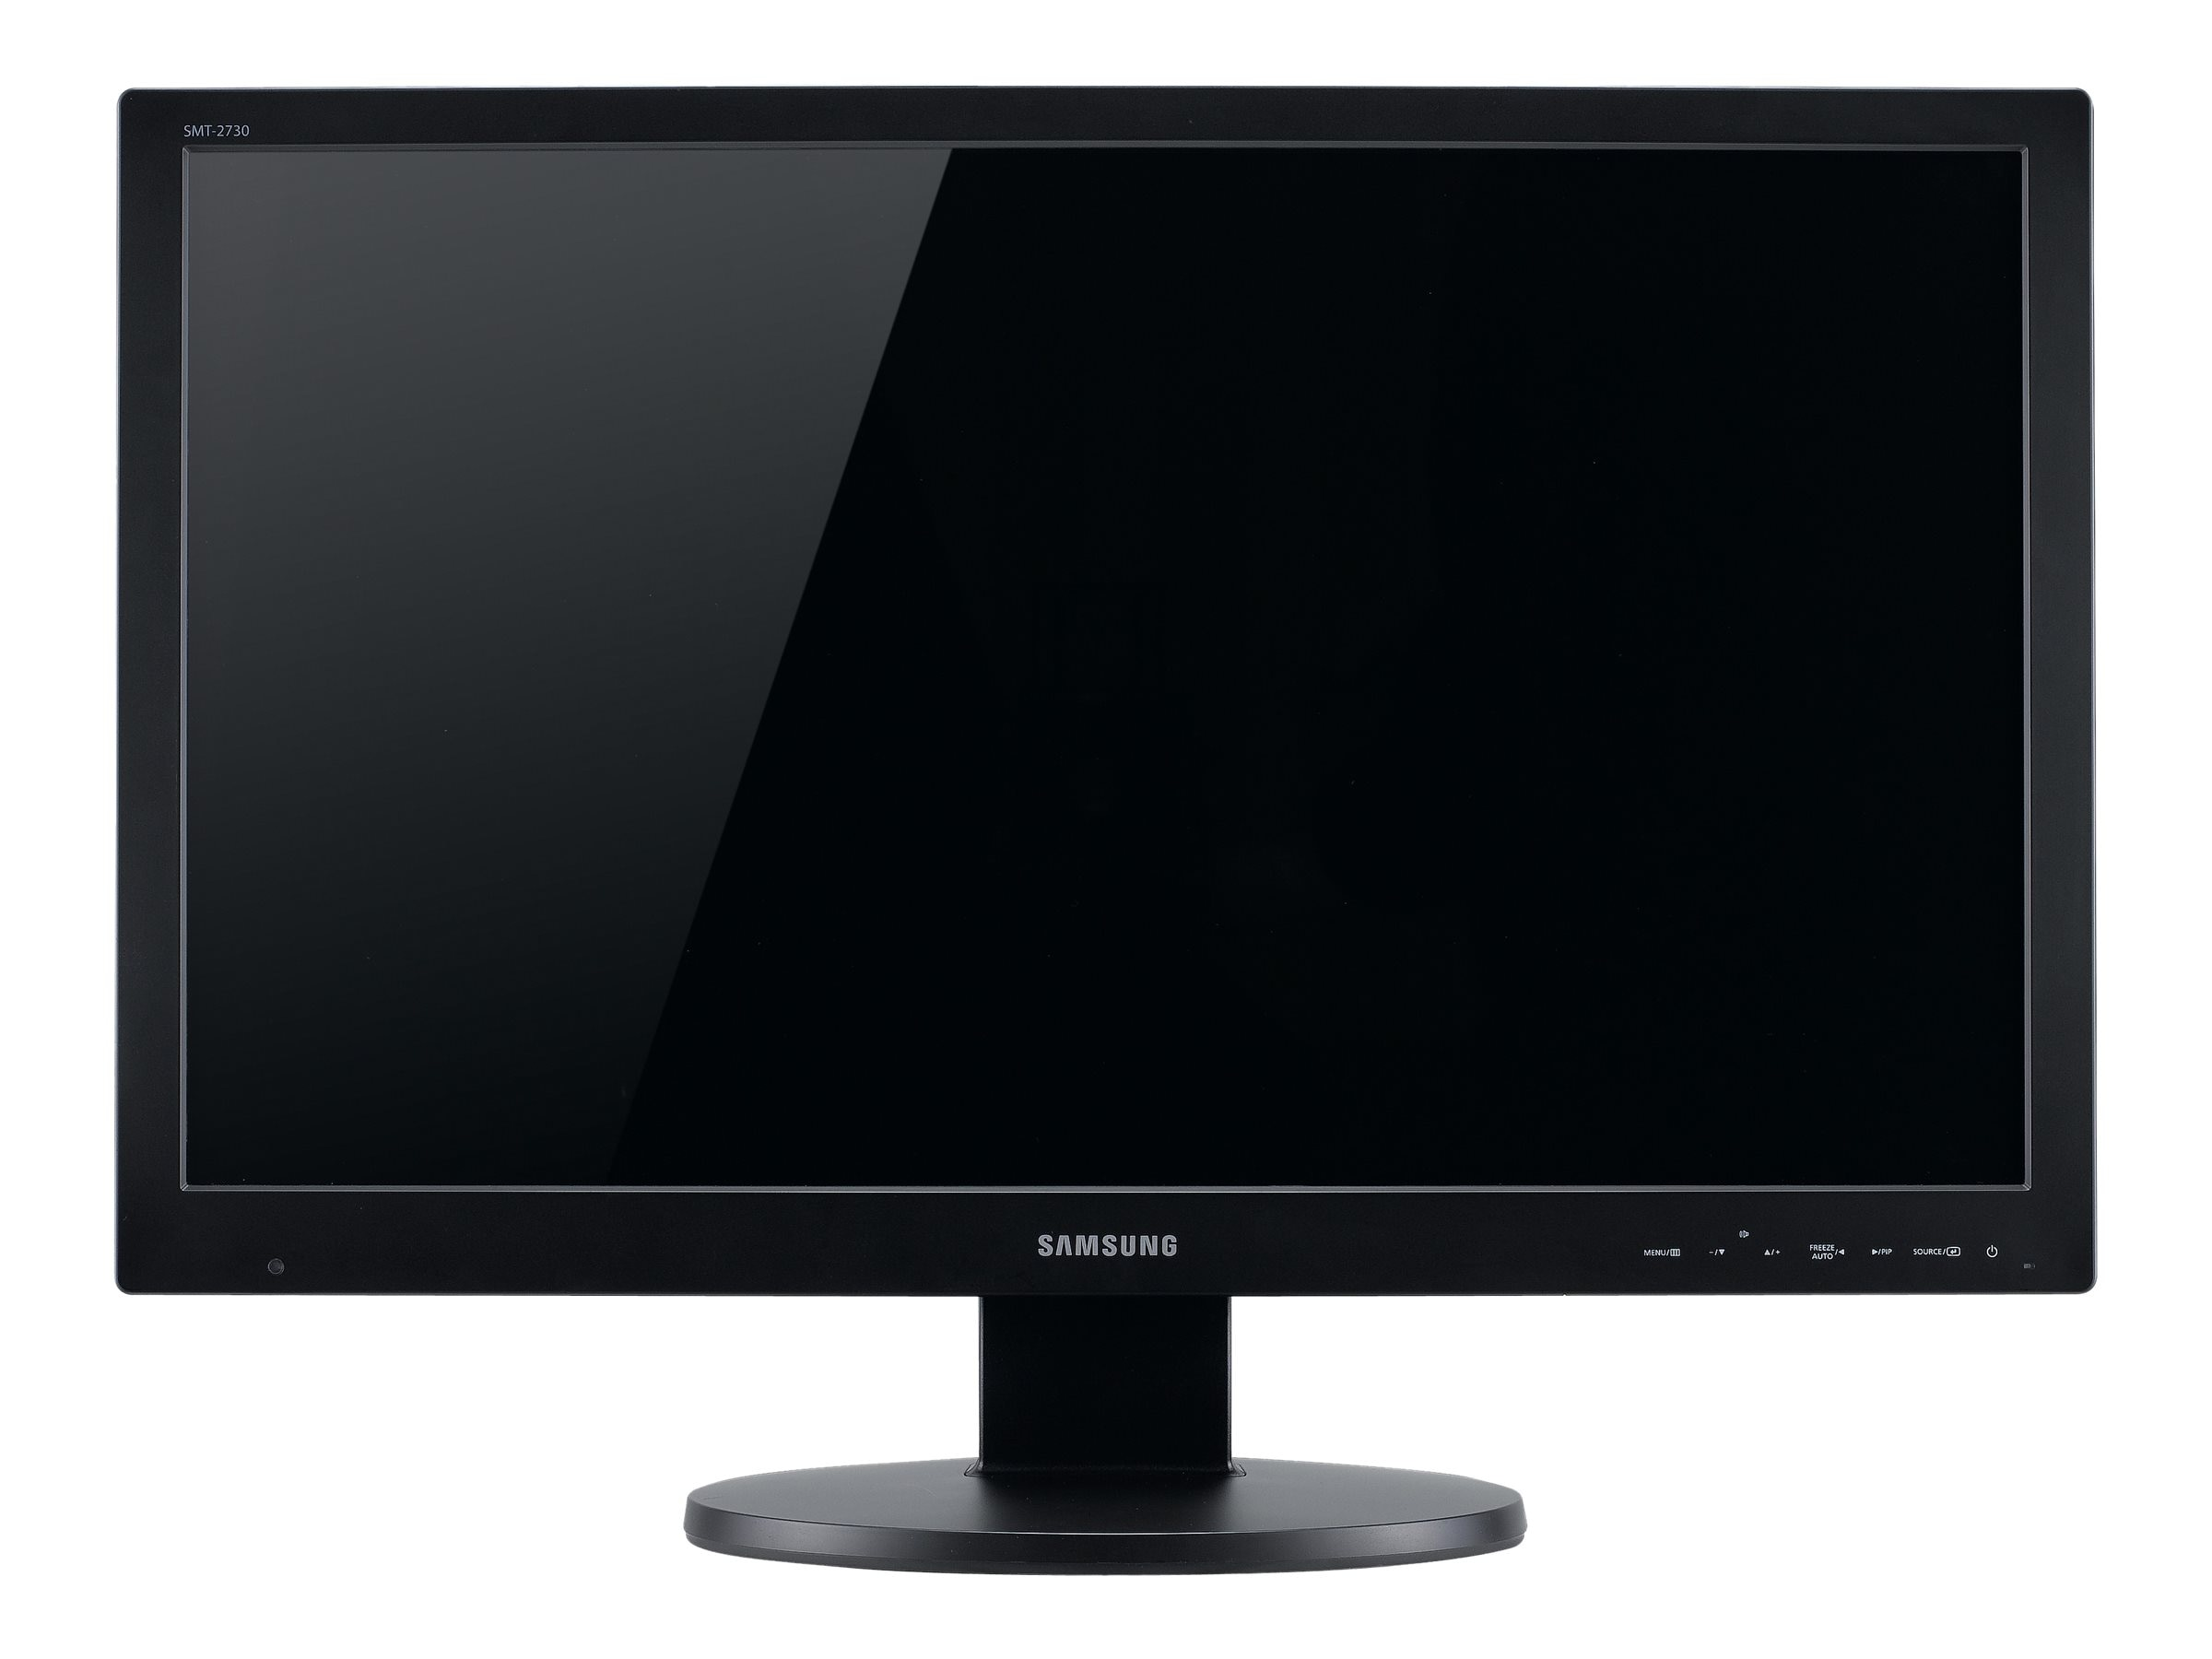 Samsung 27 SMT-2731 Full HD LED Monitor, Black, SMT-2731